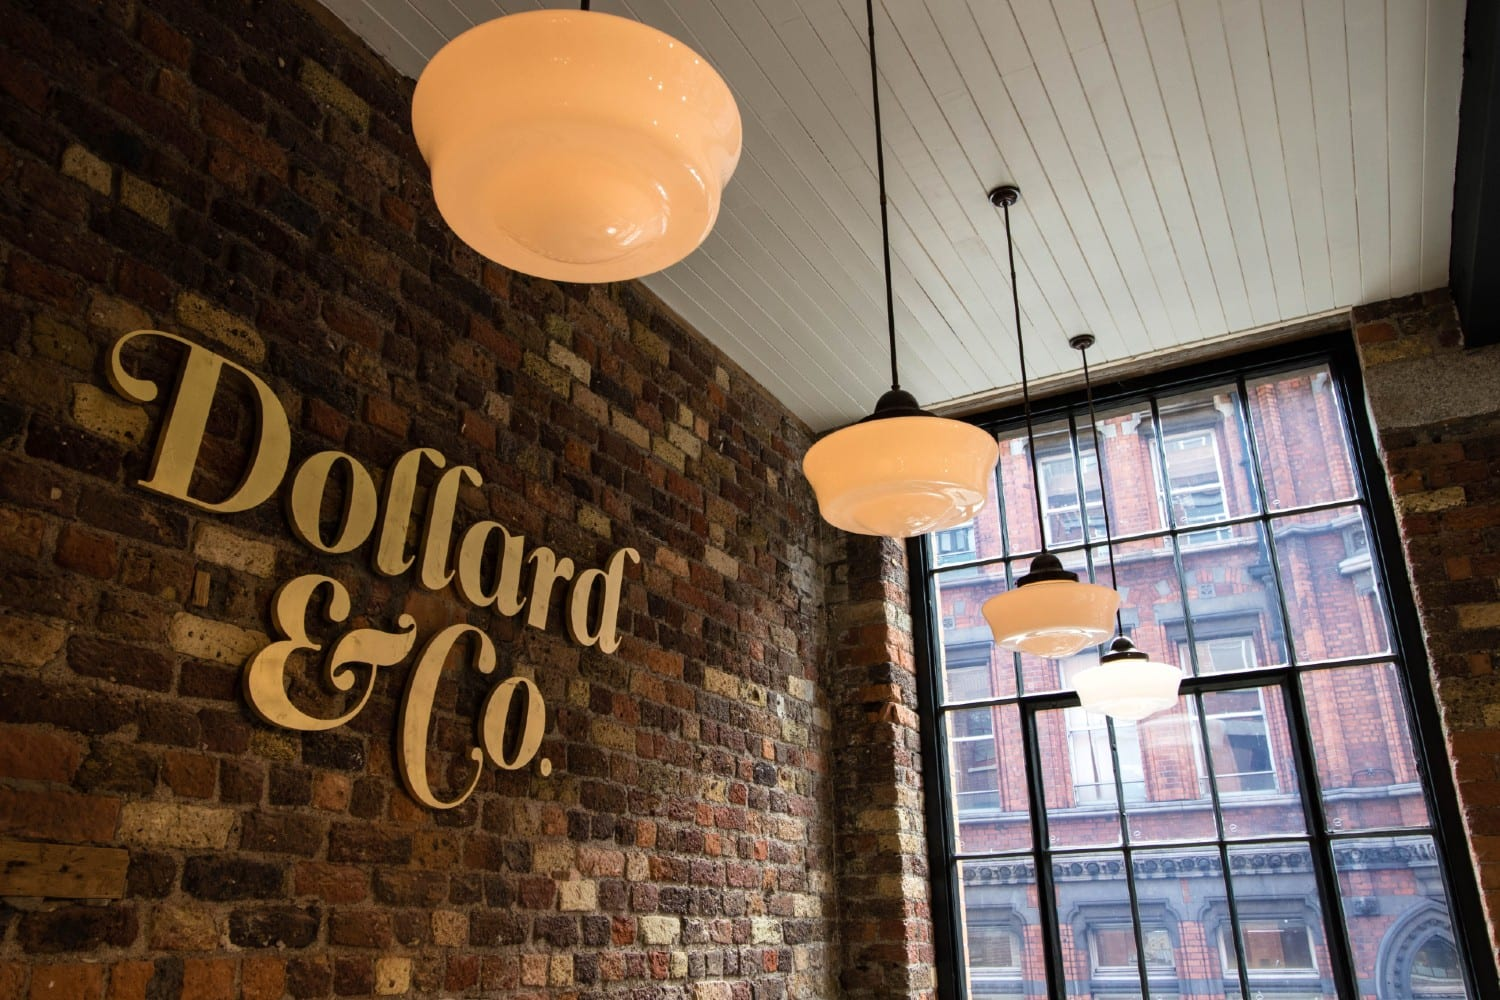 Christmas Gifting Made Easy with Dollard & Co